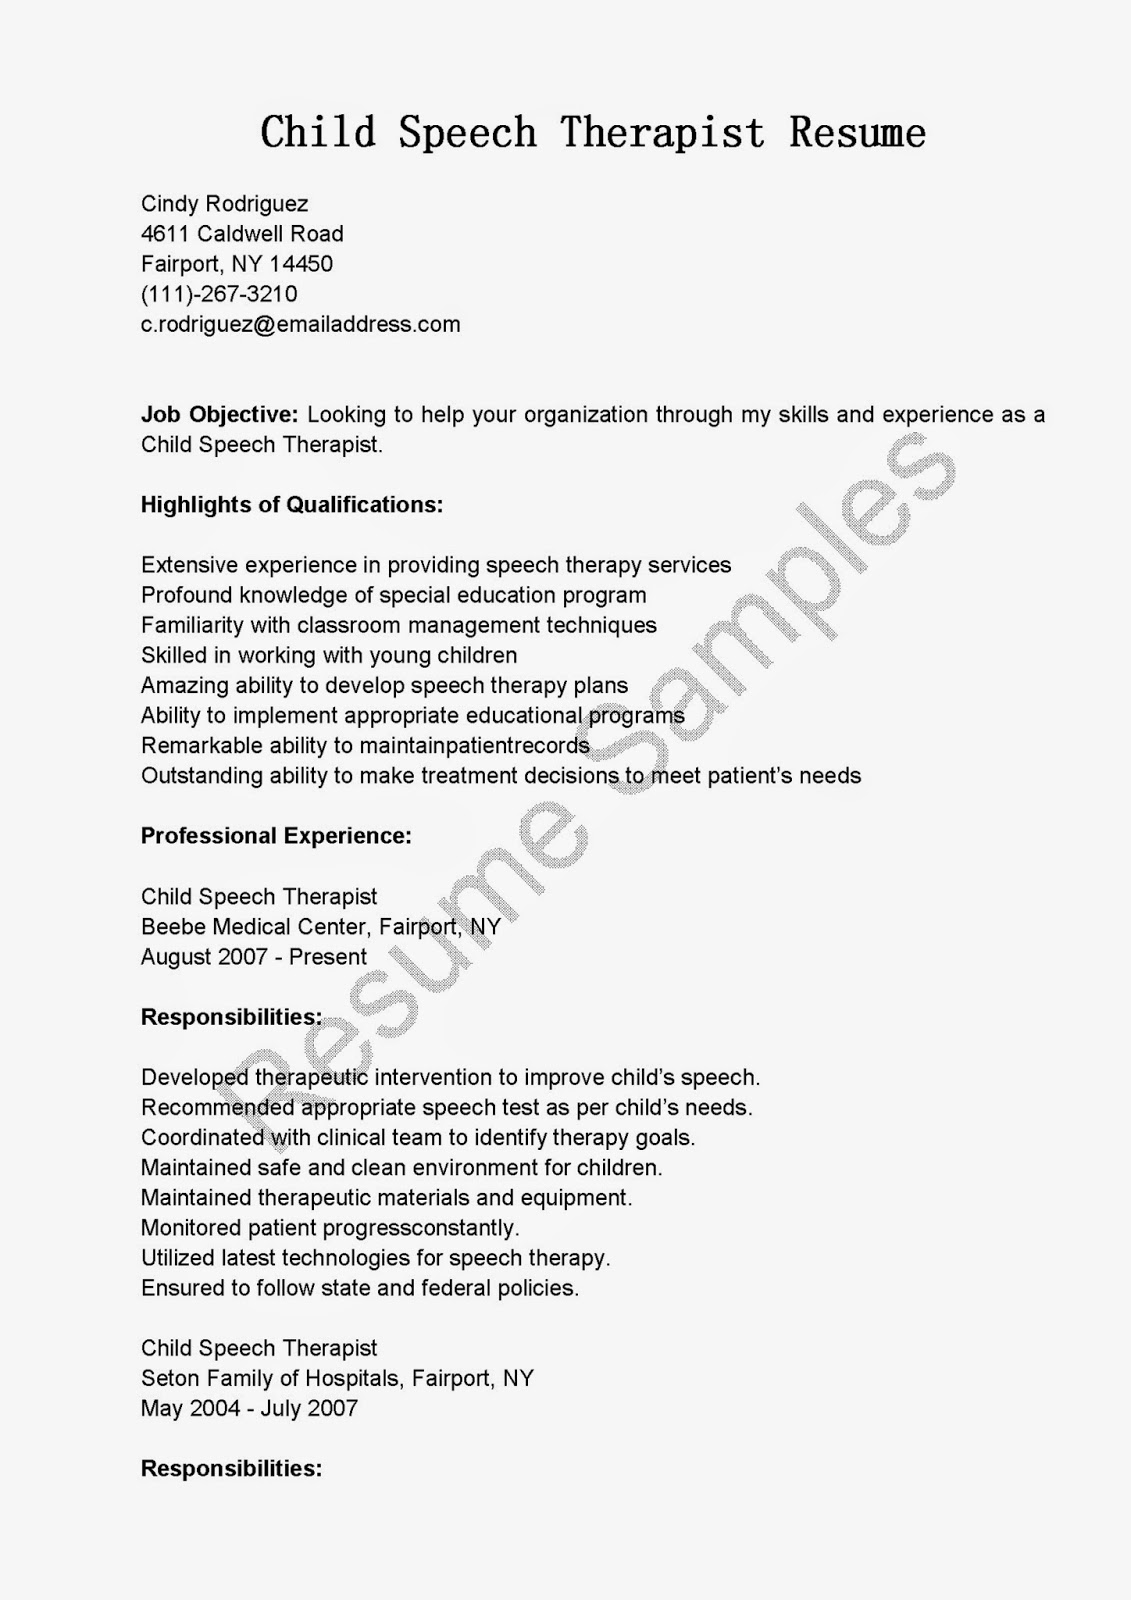 resume samples  child speech therapist resume sample